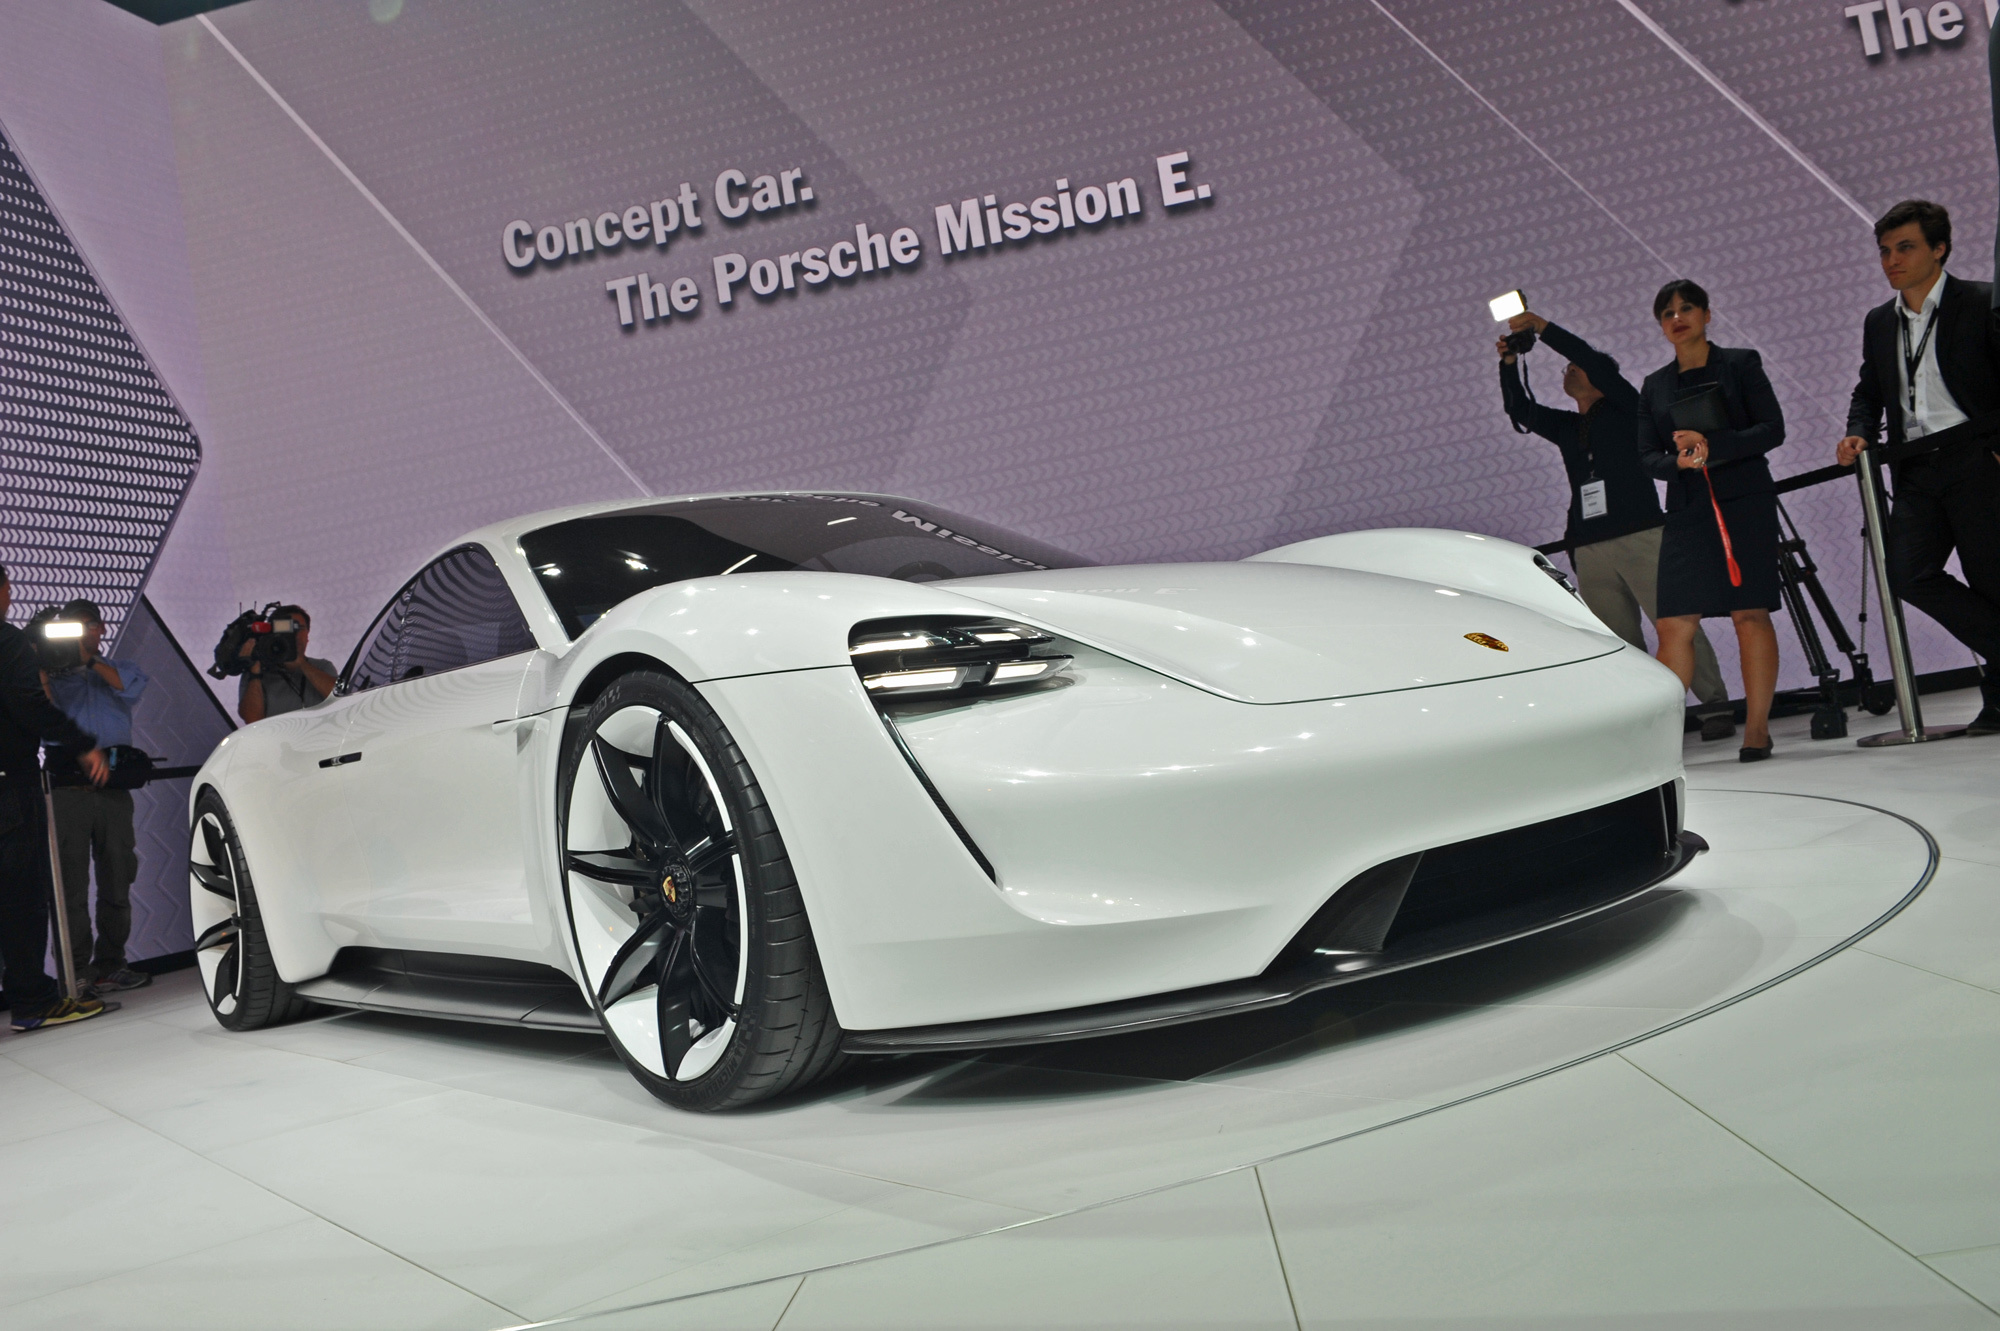 Porsche Mission E Images